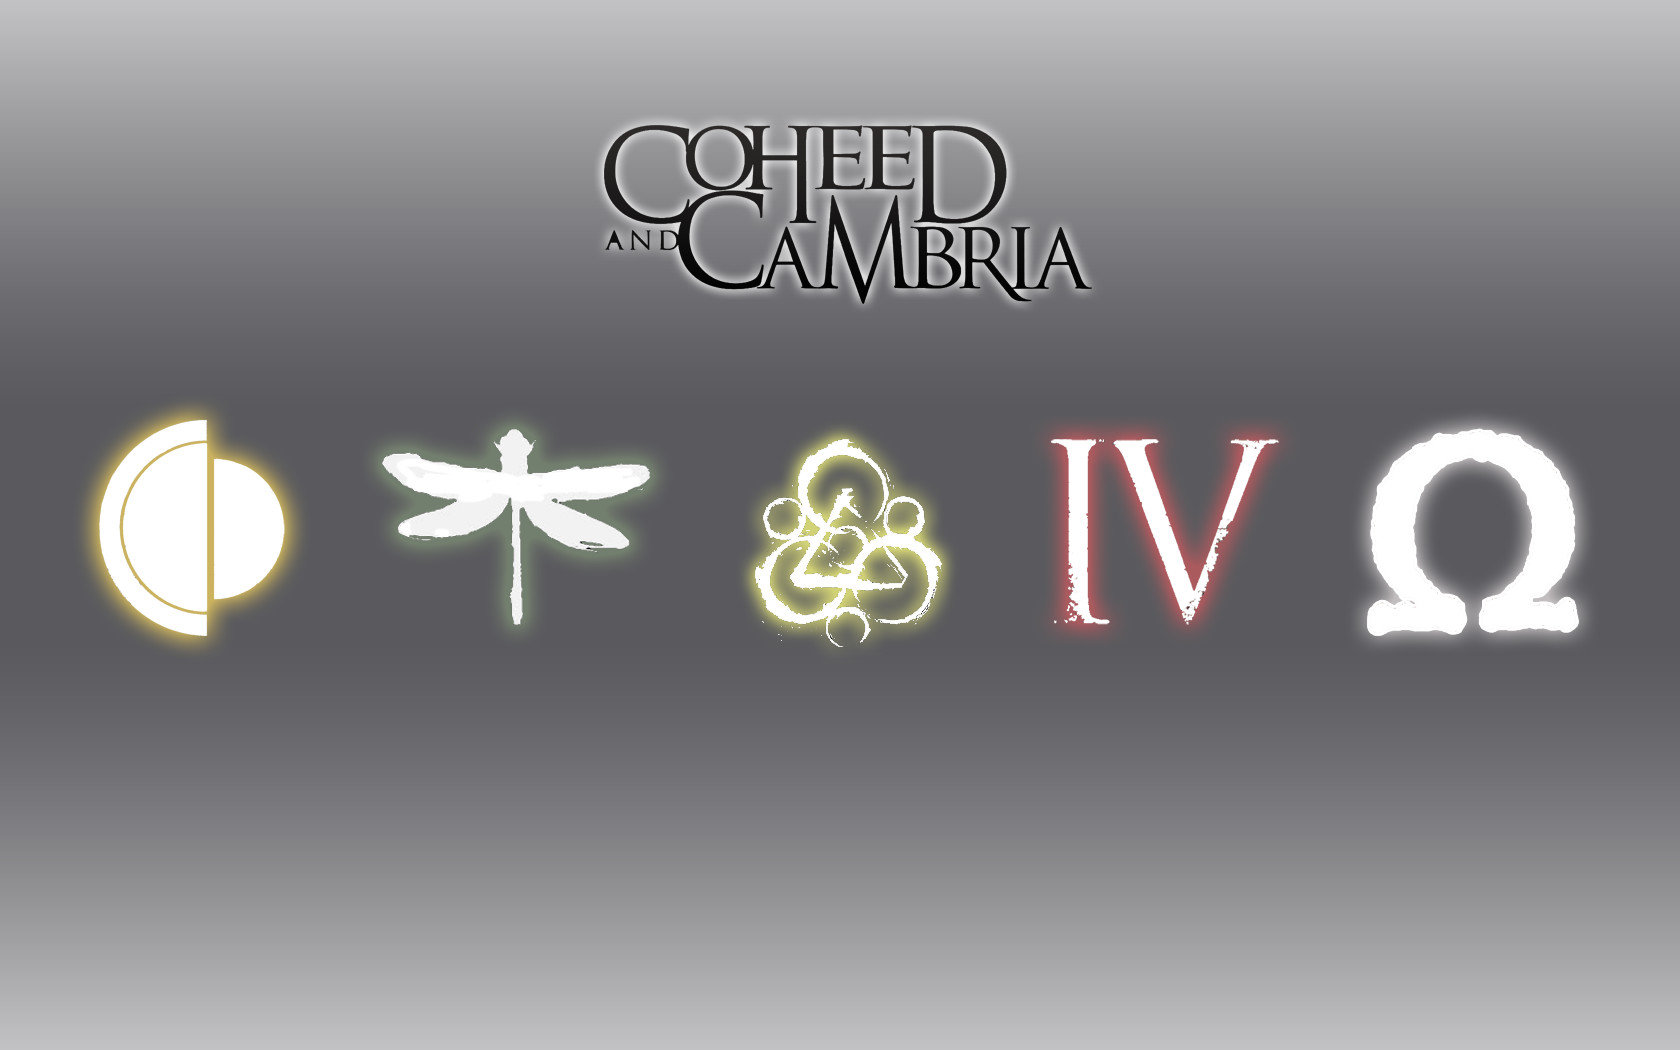 Free Download Coheed And Cambria Wallpaper Id 23147 Hd 1680x1050